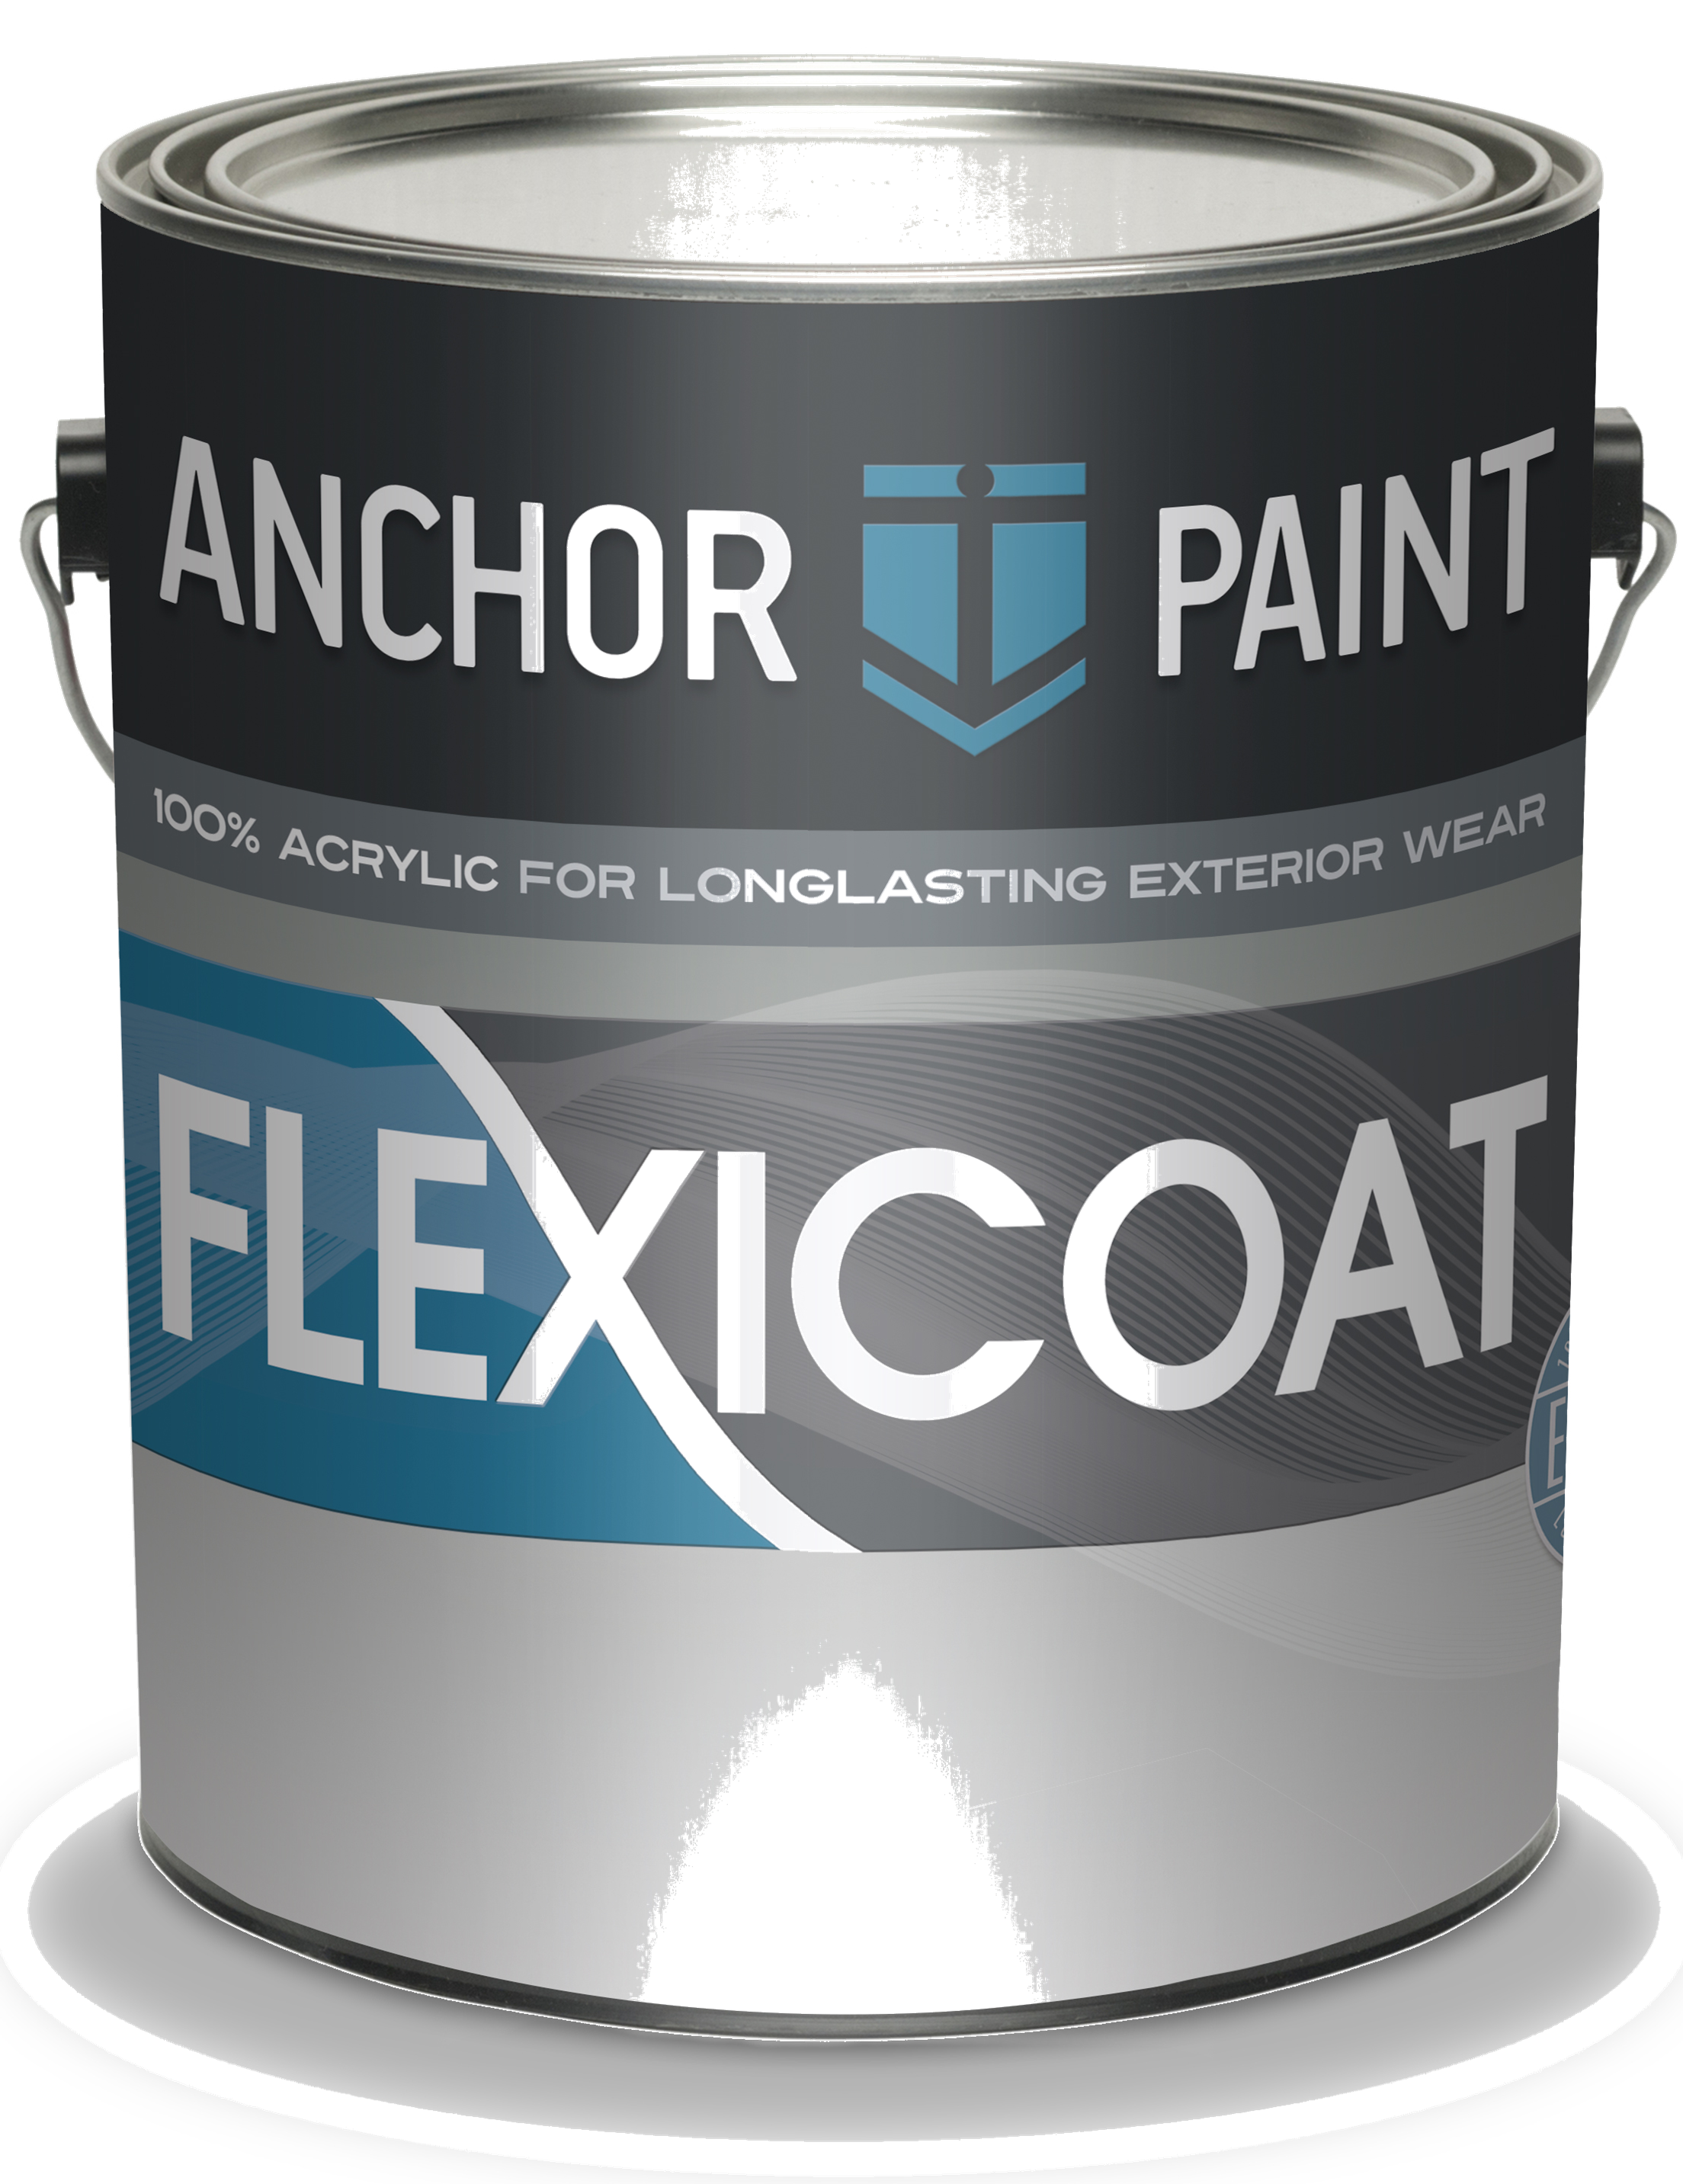 Beautiful Anchor Paint